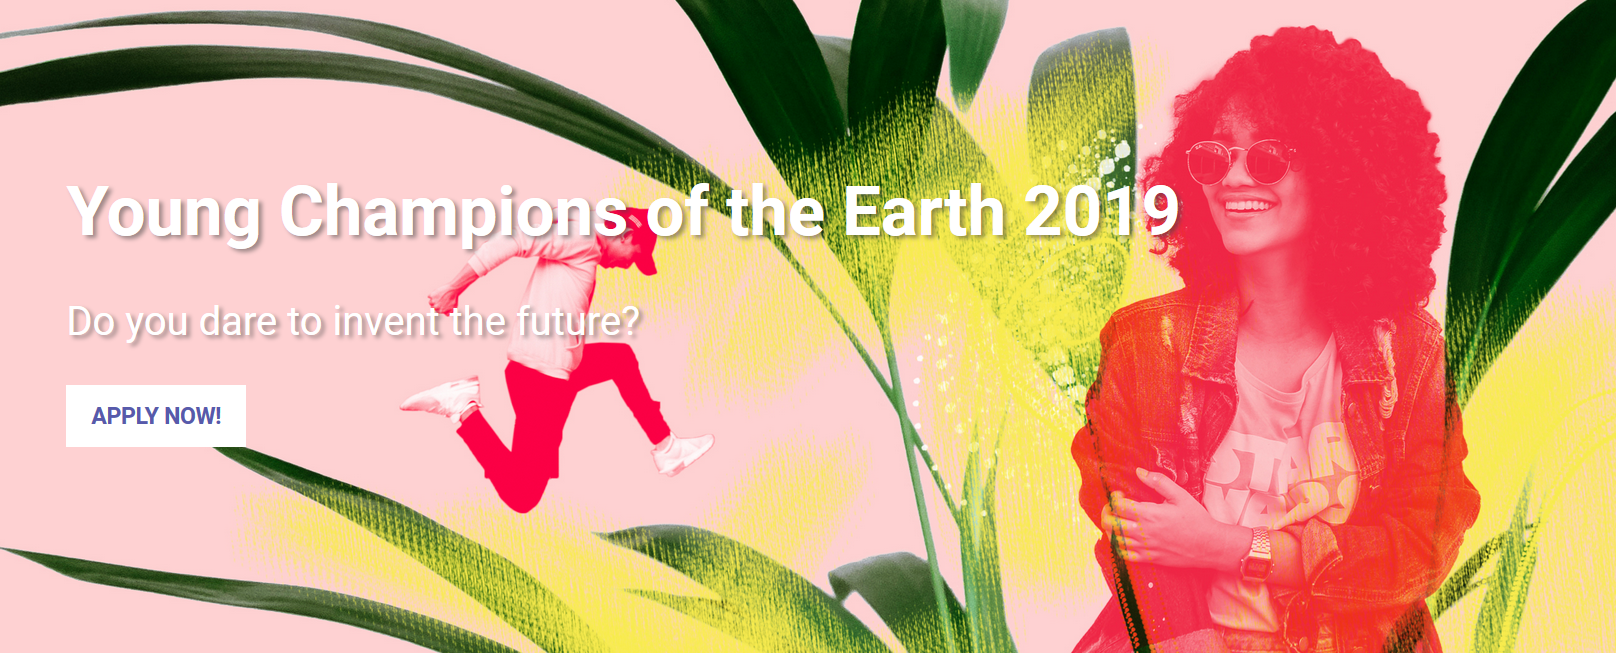 UN Environment Young Champions of the Earth Competitors 2019 (US$15,000+ in seed financing & & moneyed journey to top-level UN conference)